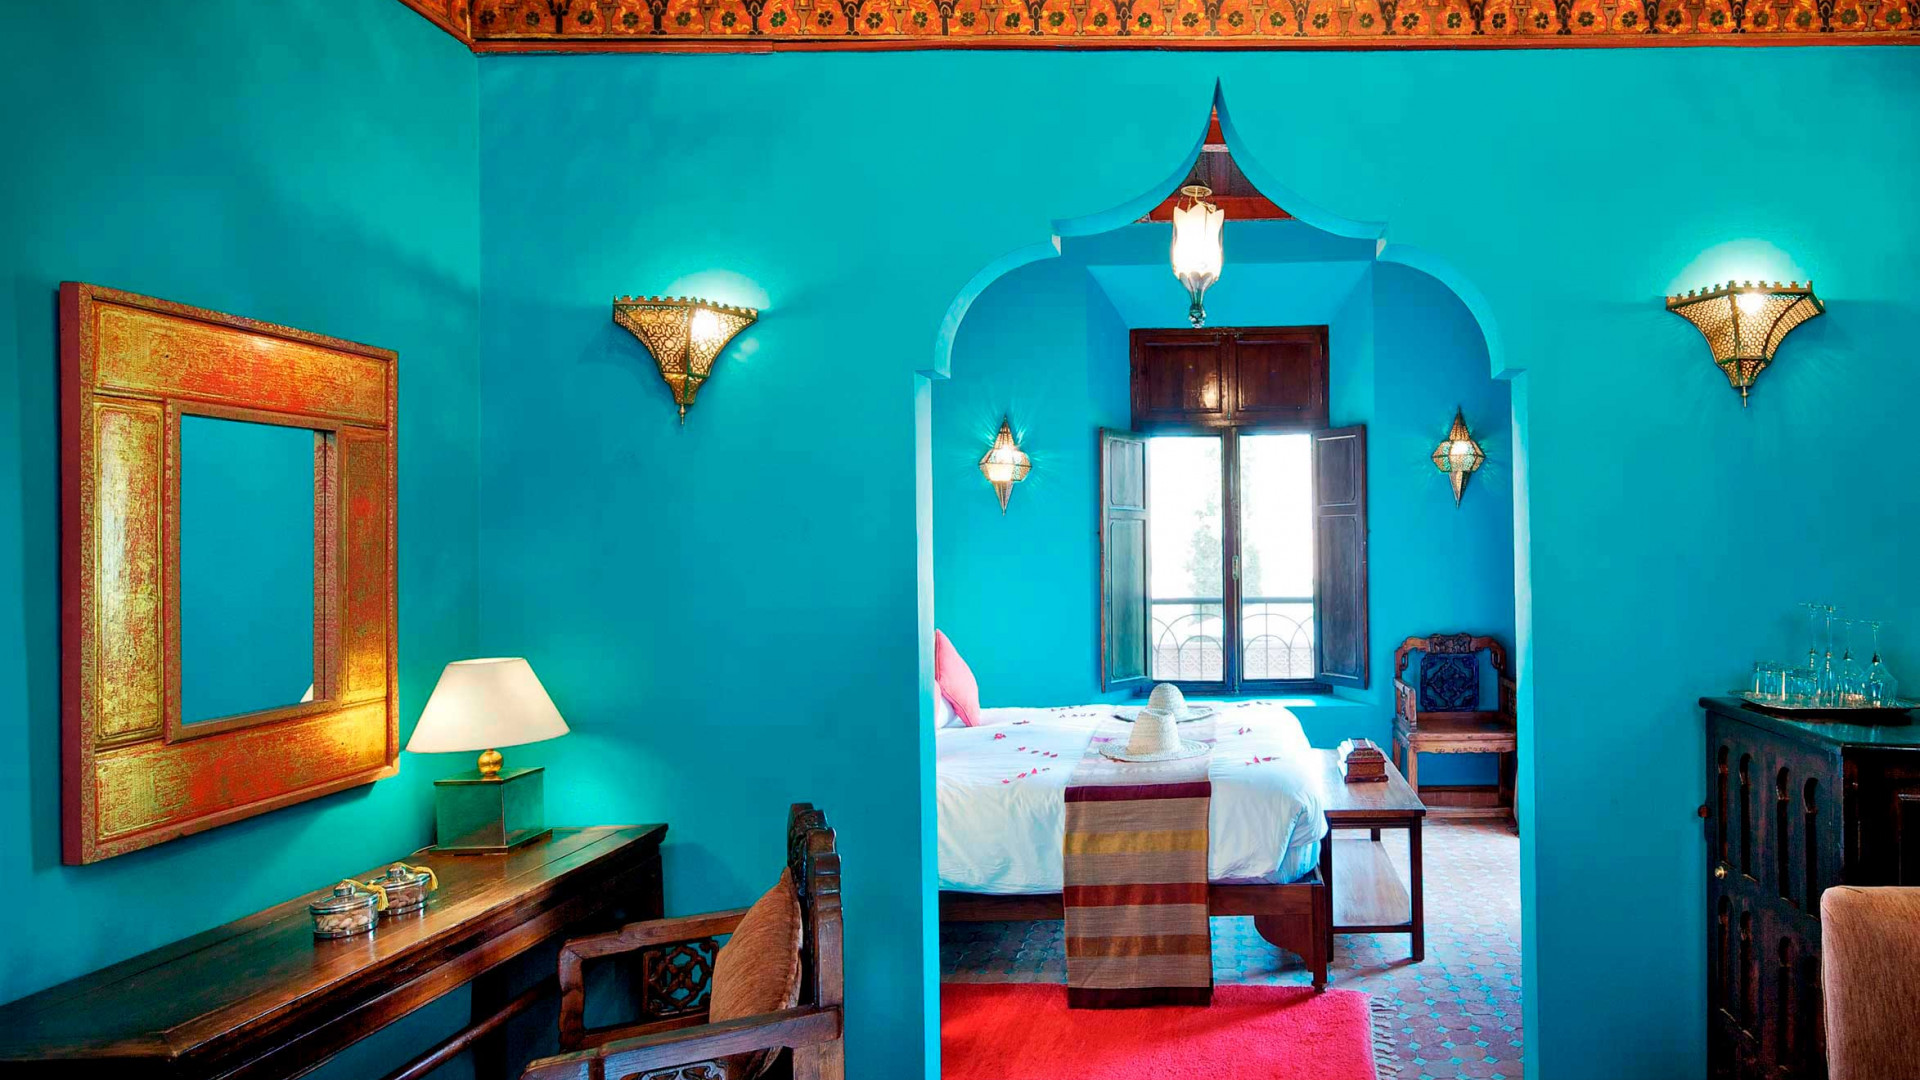 Rooms at Kasbah Tamadot, Atlas Mountains, Morocco